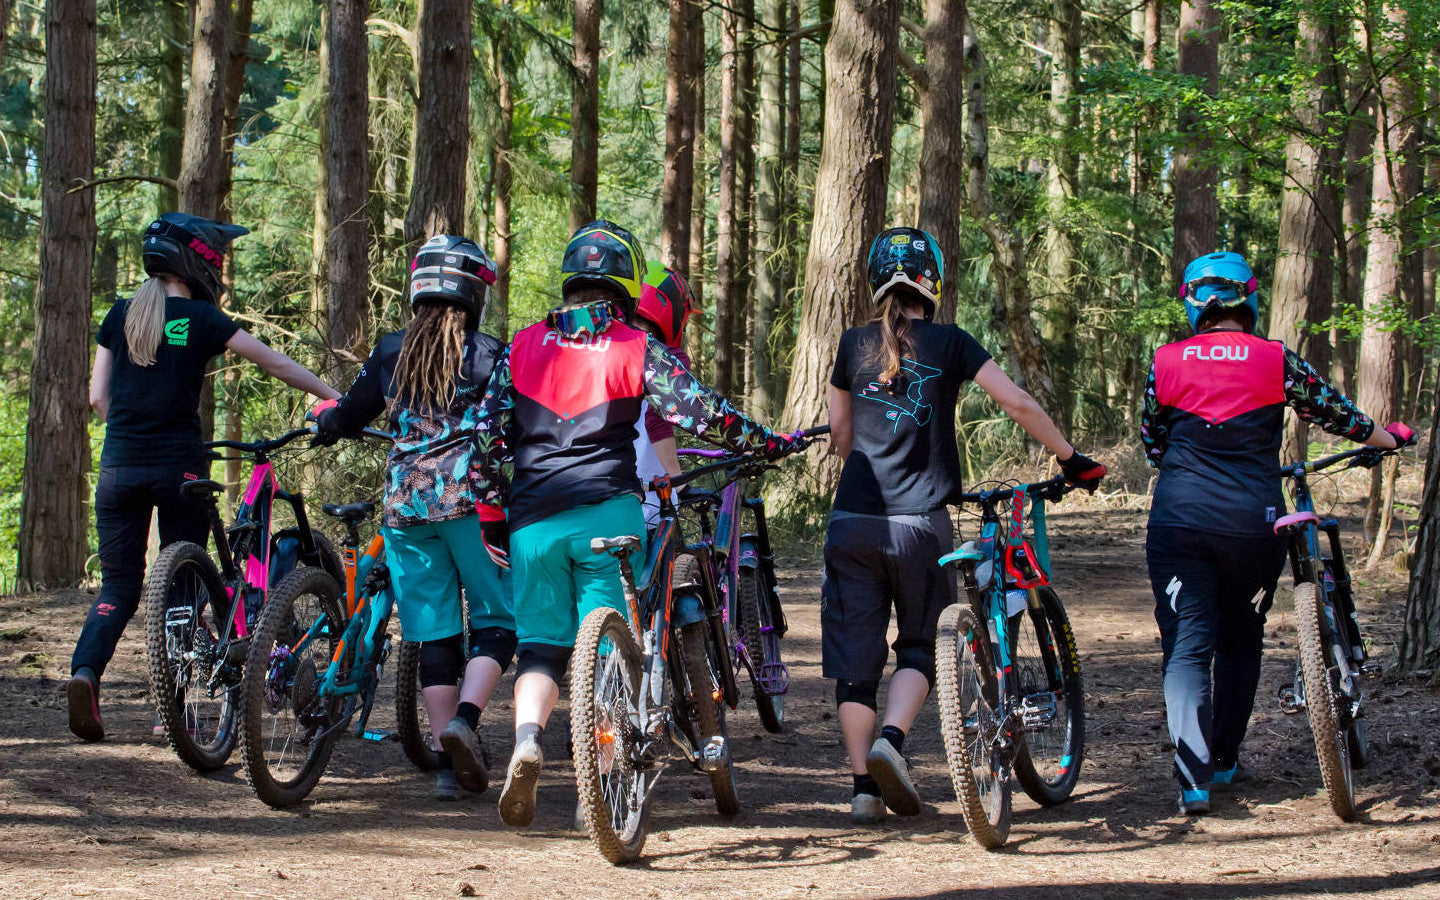 76339138 Entry to Rogate Women's riding with Glower & Liz - March 23rd